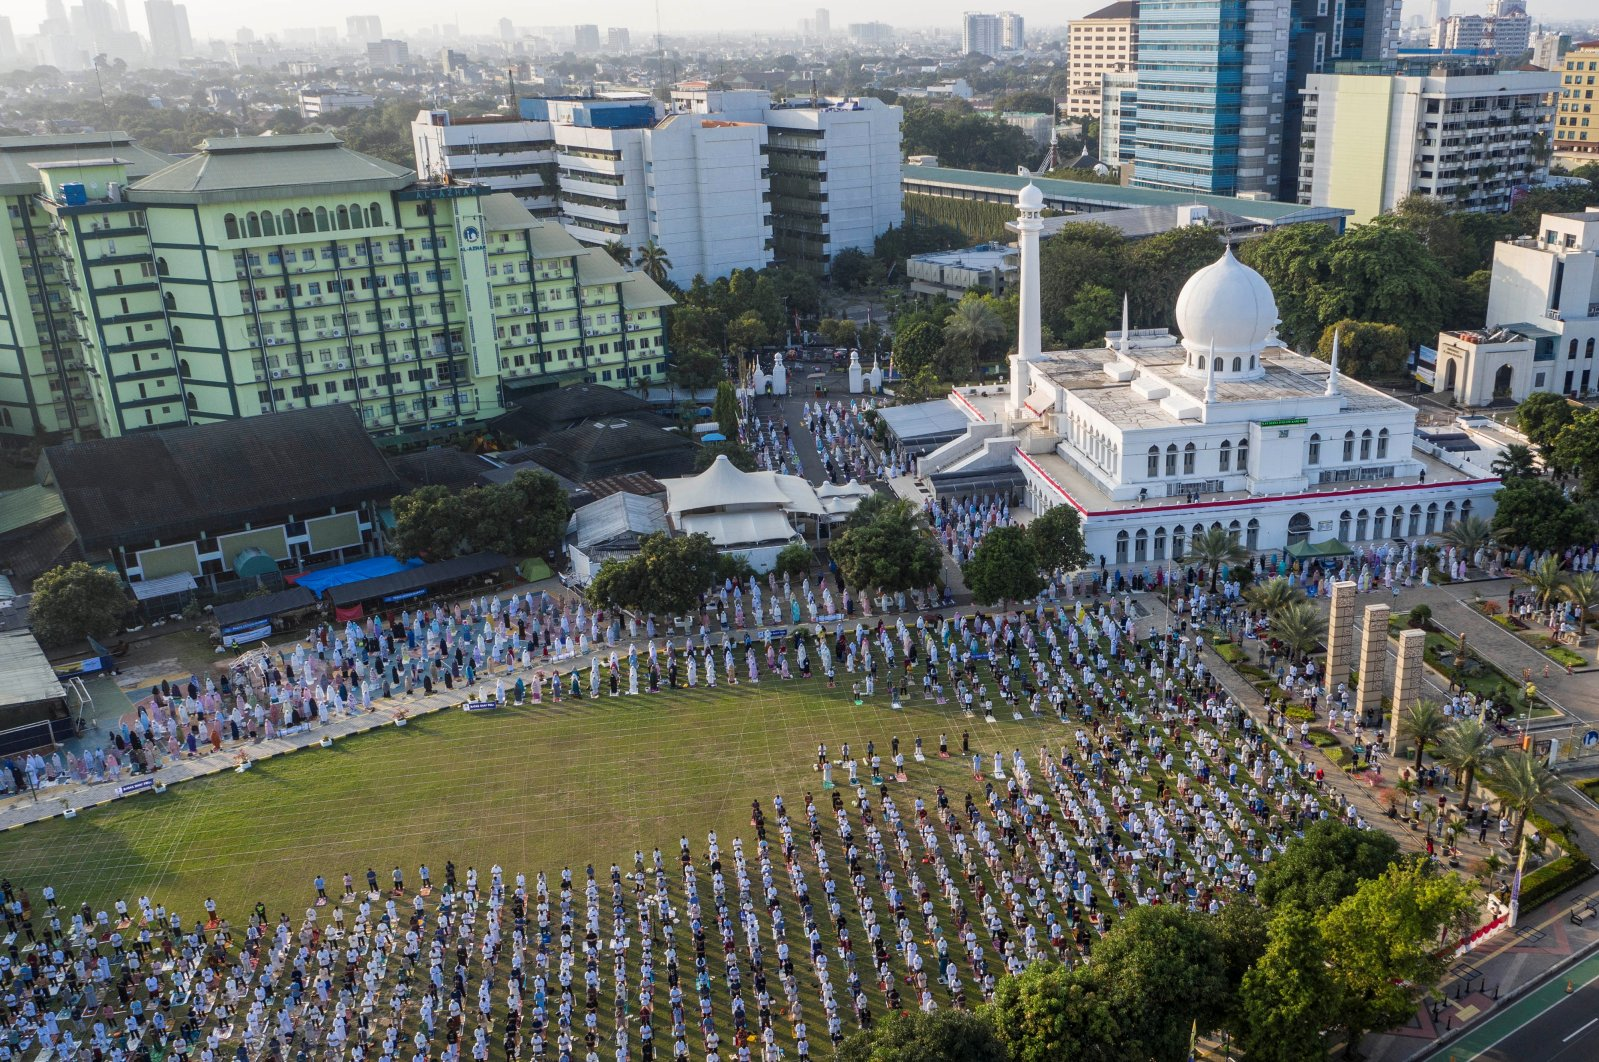 An aerial picture of Indonesian Muslims offering Eid al-Adha prayers at the Great Mosque of Al-Azhar, during the outbreak of the coronavirus disease (COVID-19) in Jakarta, Indonesia, July 31, 2020. (Antara Foto via Reuters)